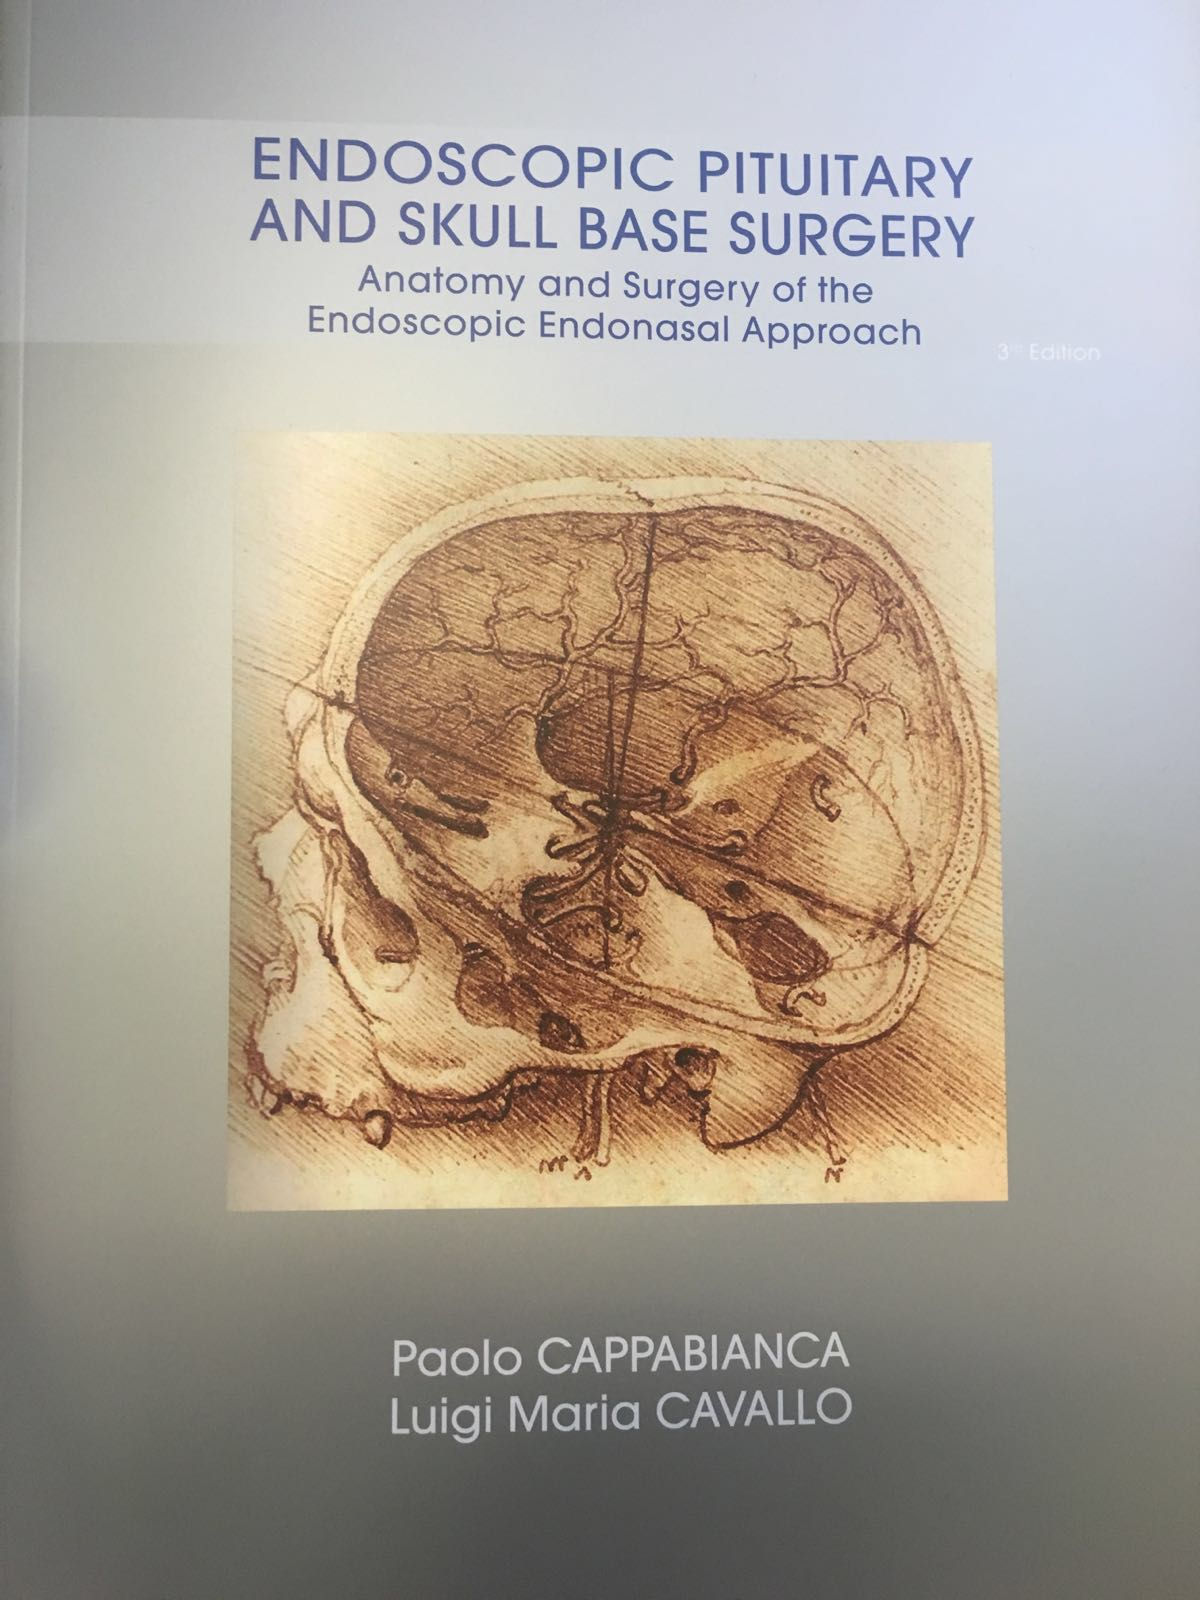 Endoscopic Pituitary And Skull Base Surgery Anatomy And Surgery Of